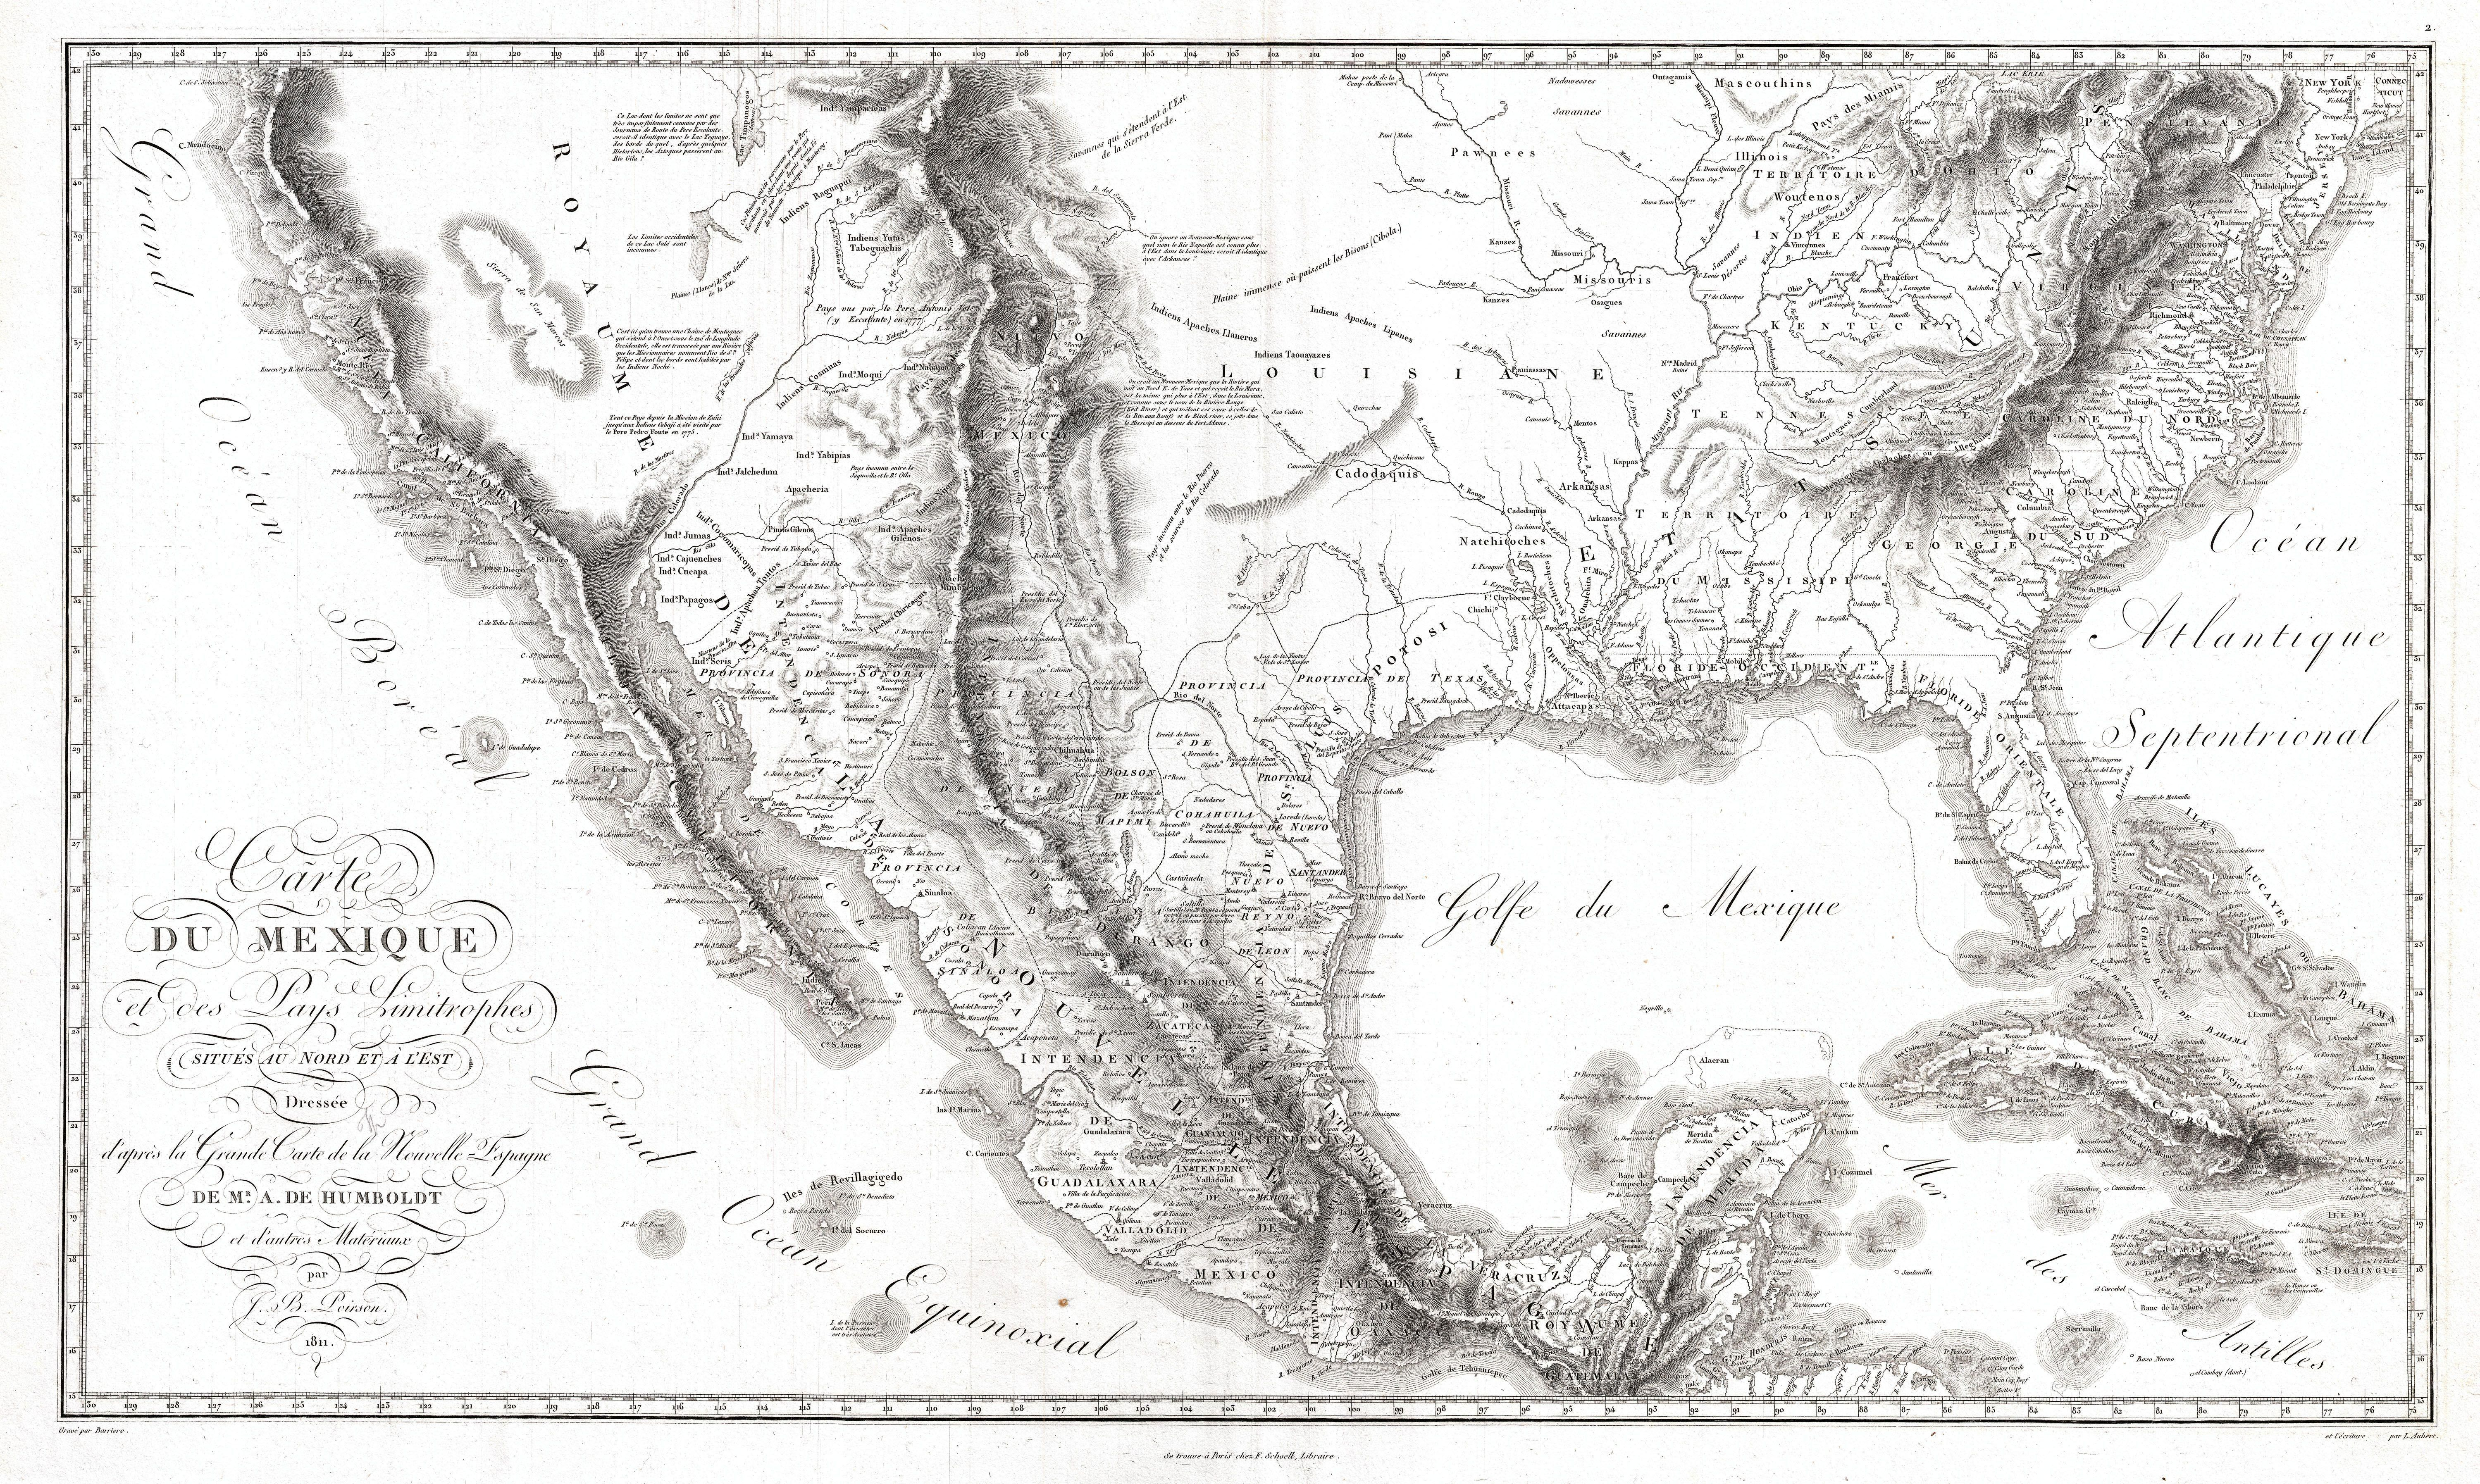 1811 Humboldt Map of Mexico, Texas, Louisiana, and Florida. | Mexico on map of mississippi, map of new jersey, map florida louisiana, map of oklahoma, map of arkansas, map of virginia, map of florida, map of new york, early maps of louisiana, map of california, map of michigan, map of alabama, map of south carolina, map arkansas louisiana, map of rhode island, map alabama louisiana, map of tennessee, map of georgia, map of kentucky, map of new mexico,